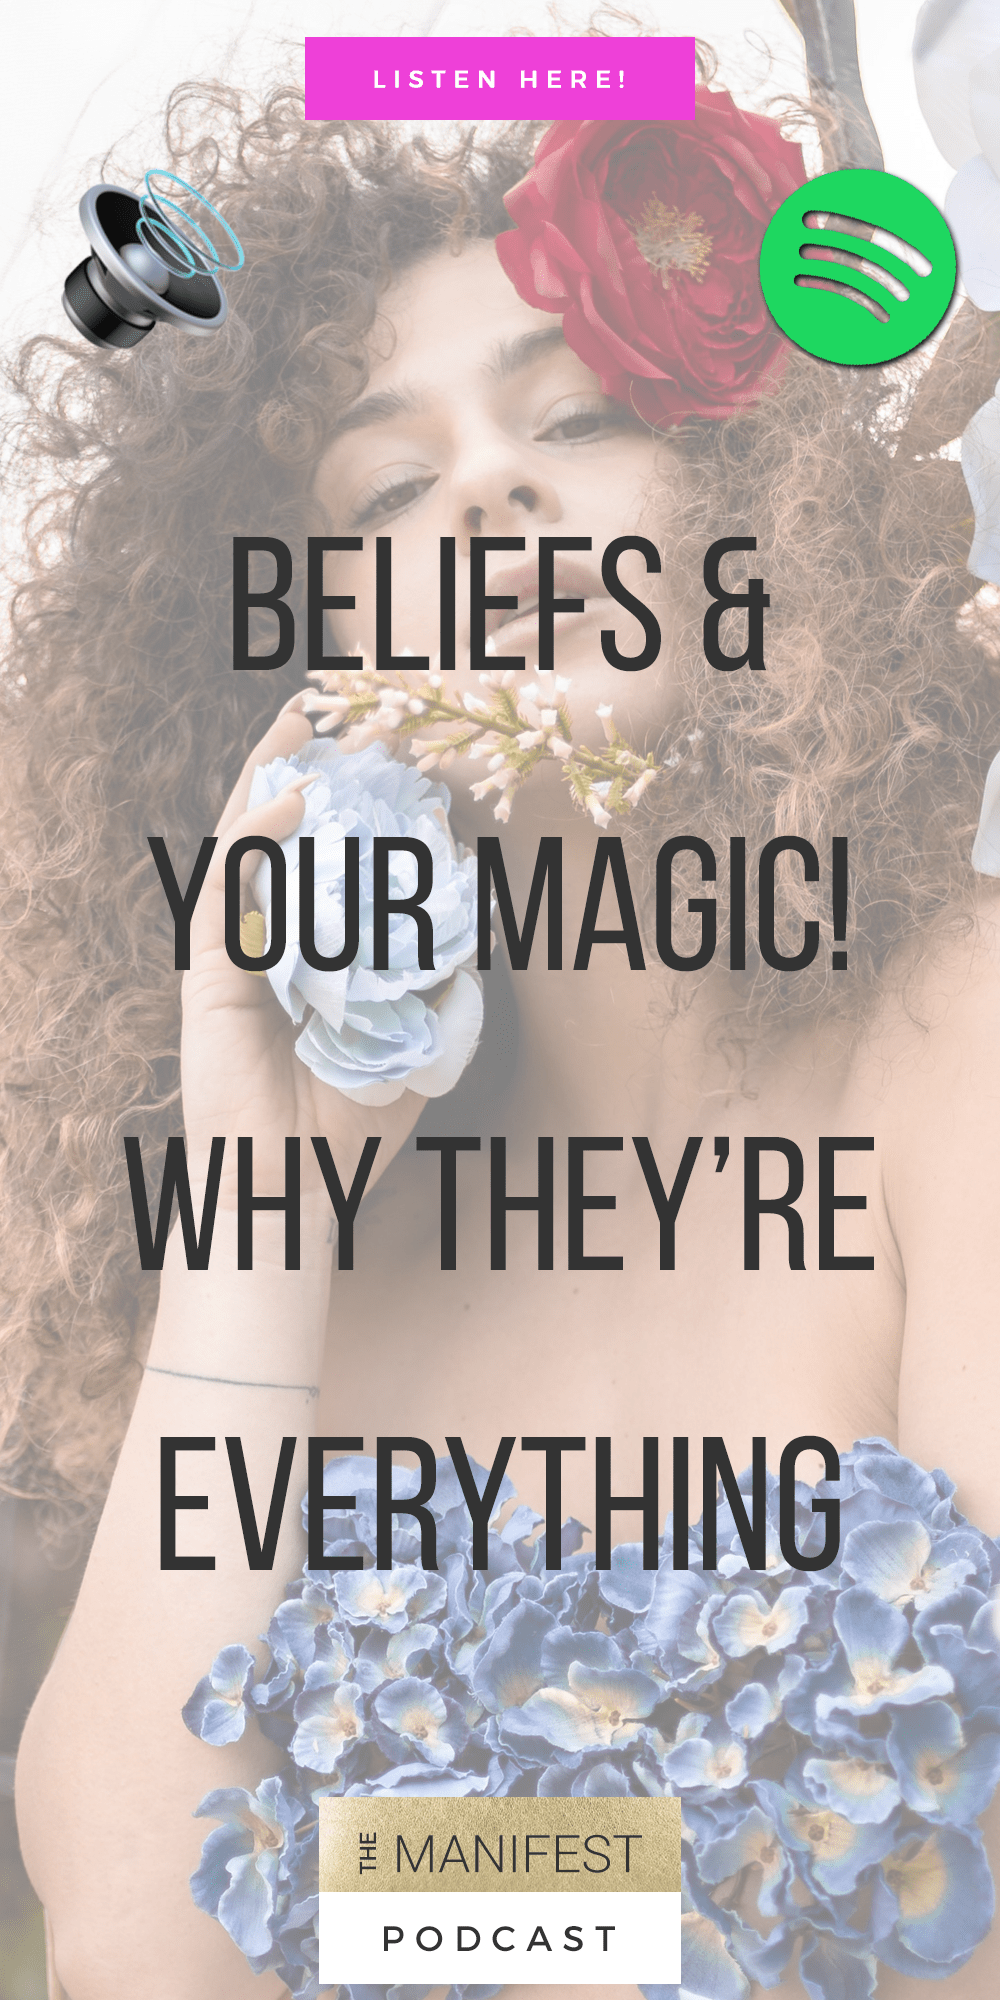 Episode 12: The Magical Power Of Belief